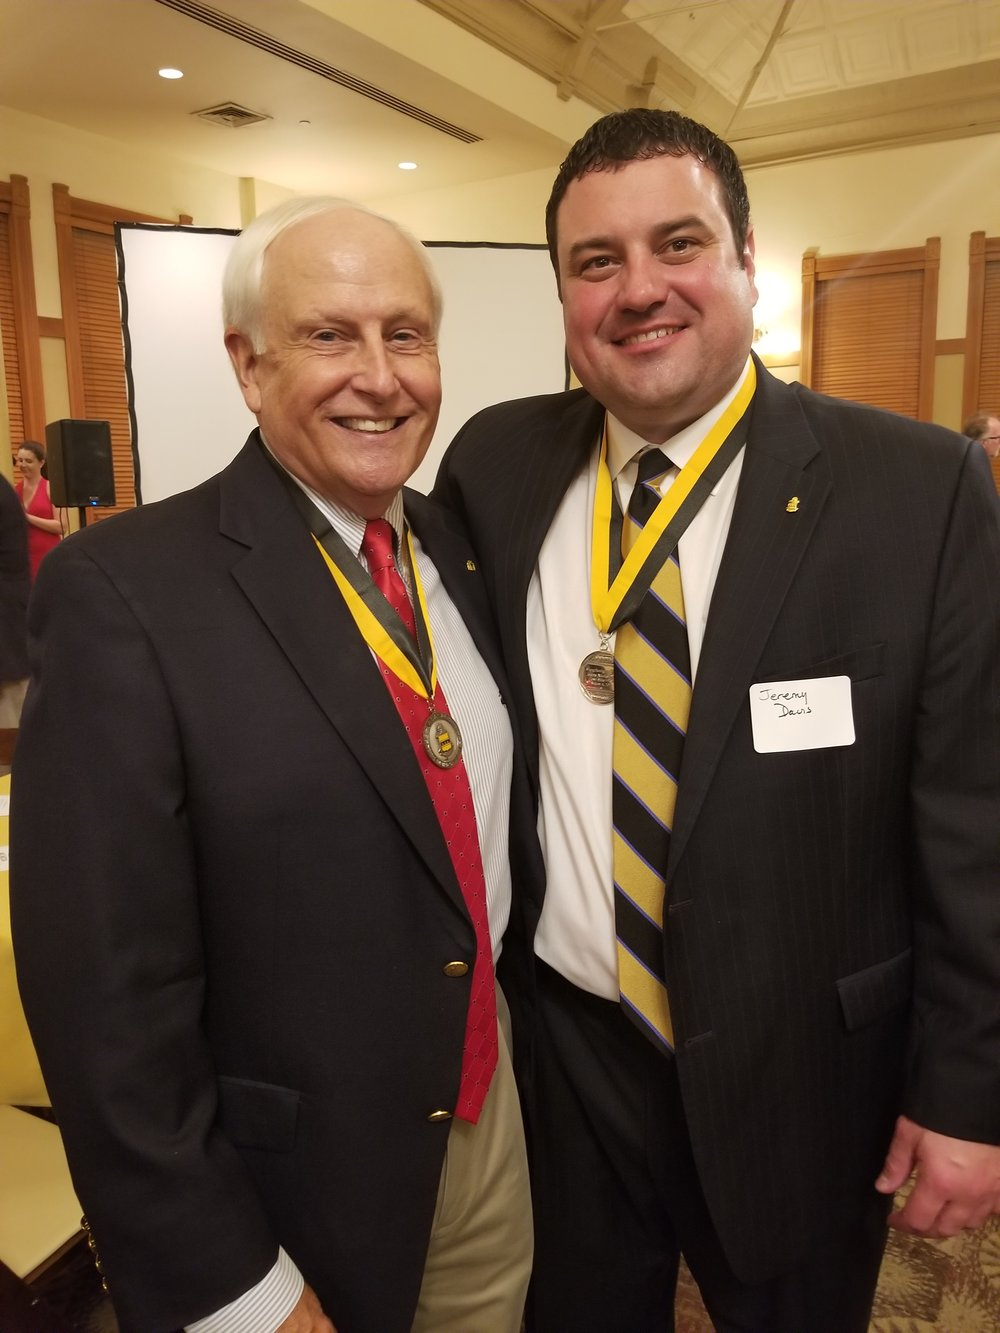 Past National President John Hoffner, Purdue '66 and International President Jeremy Davis, Iowa State '00